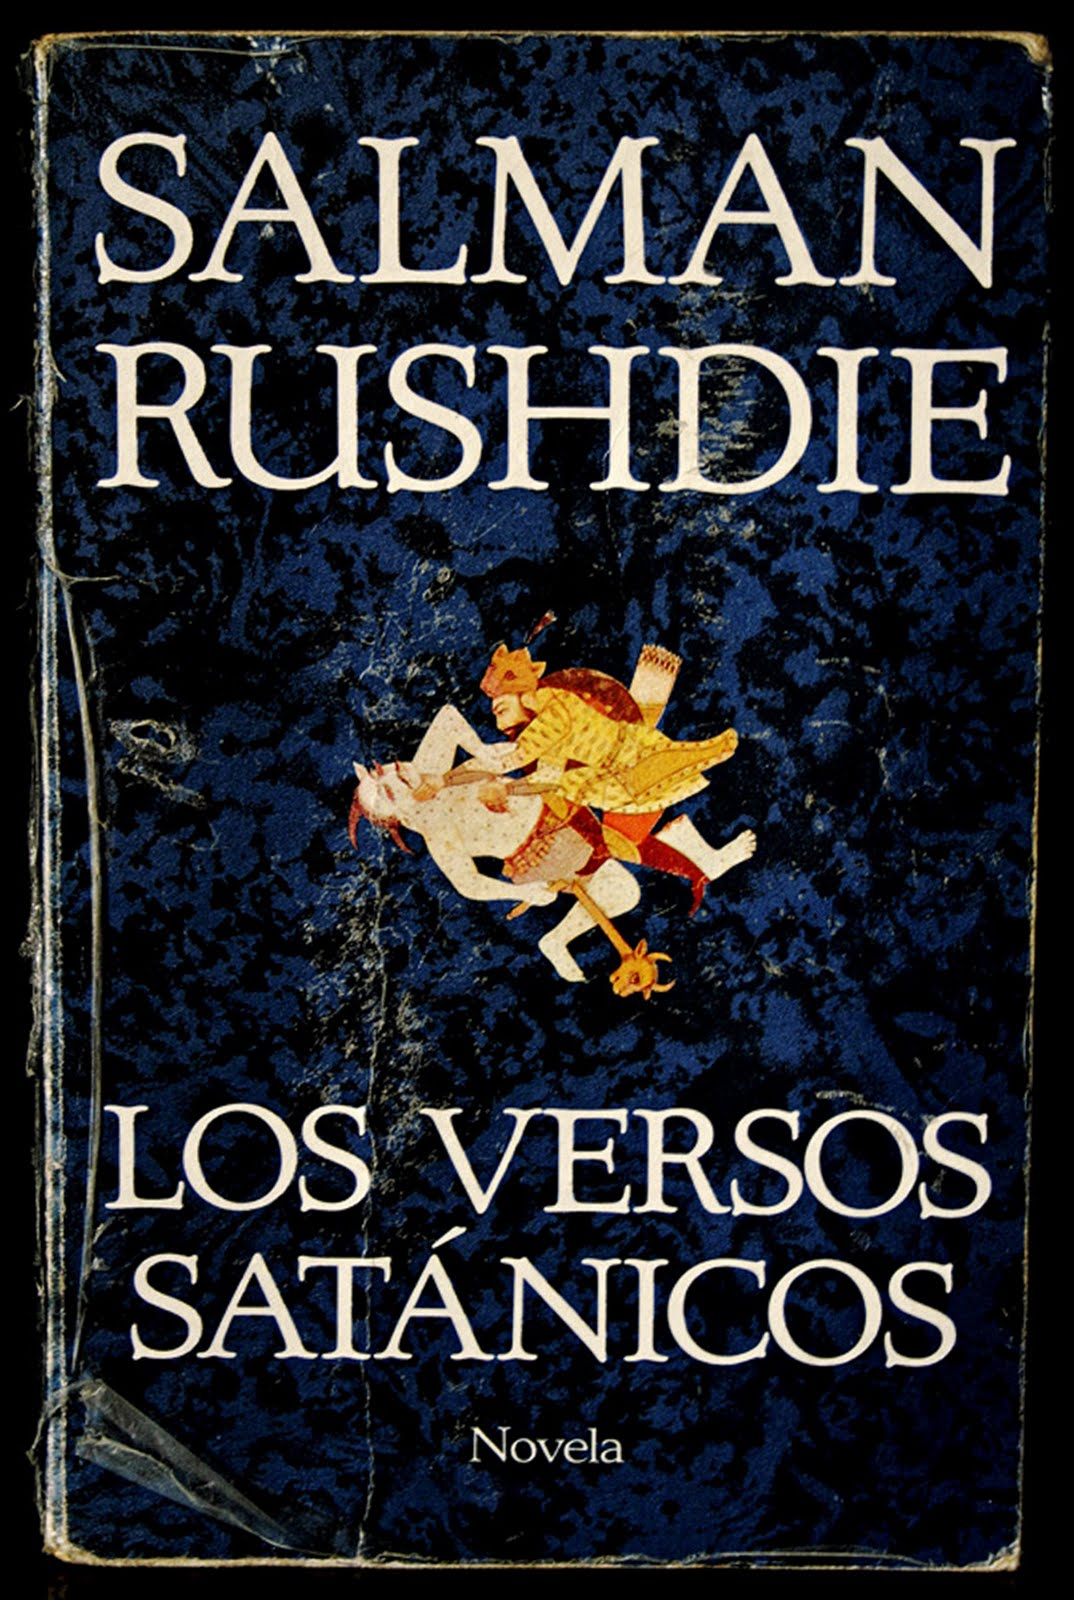 Los Versos Satnicos por Salman Rushdie